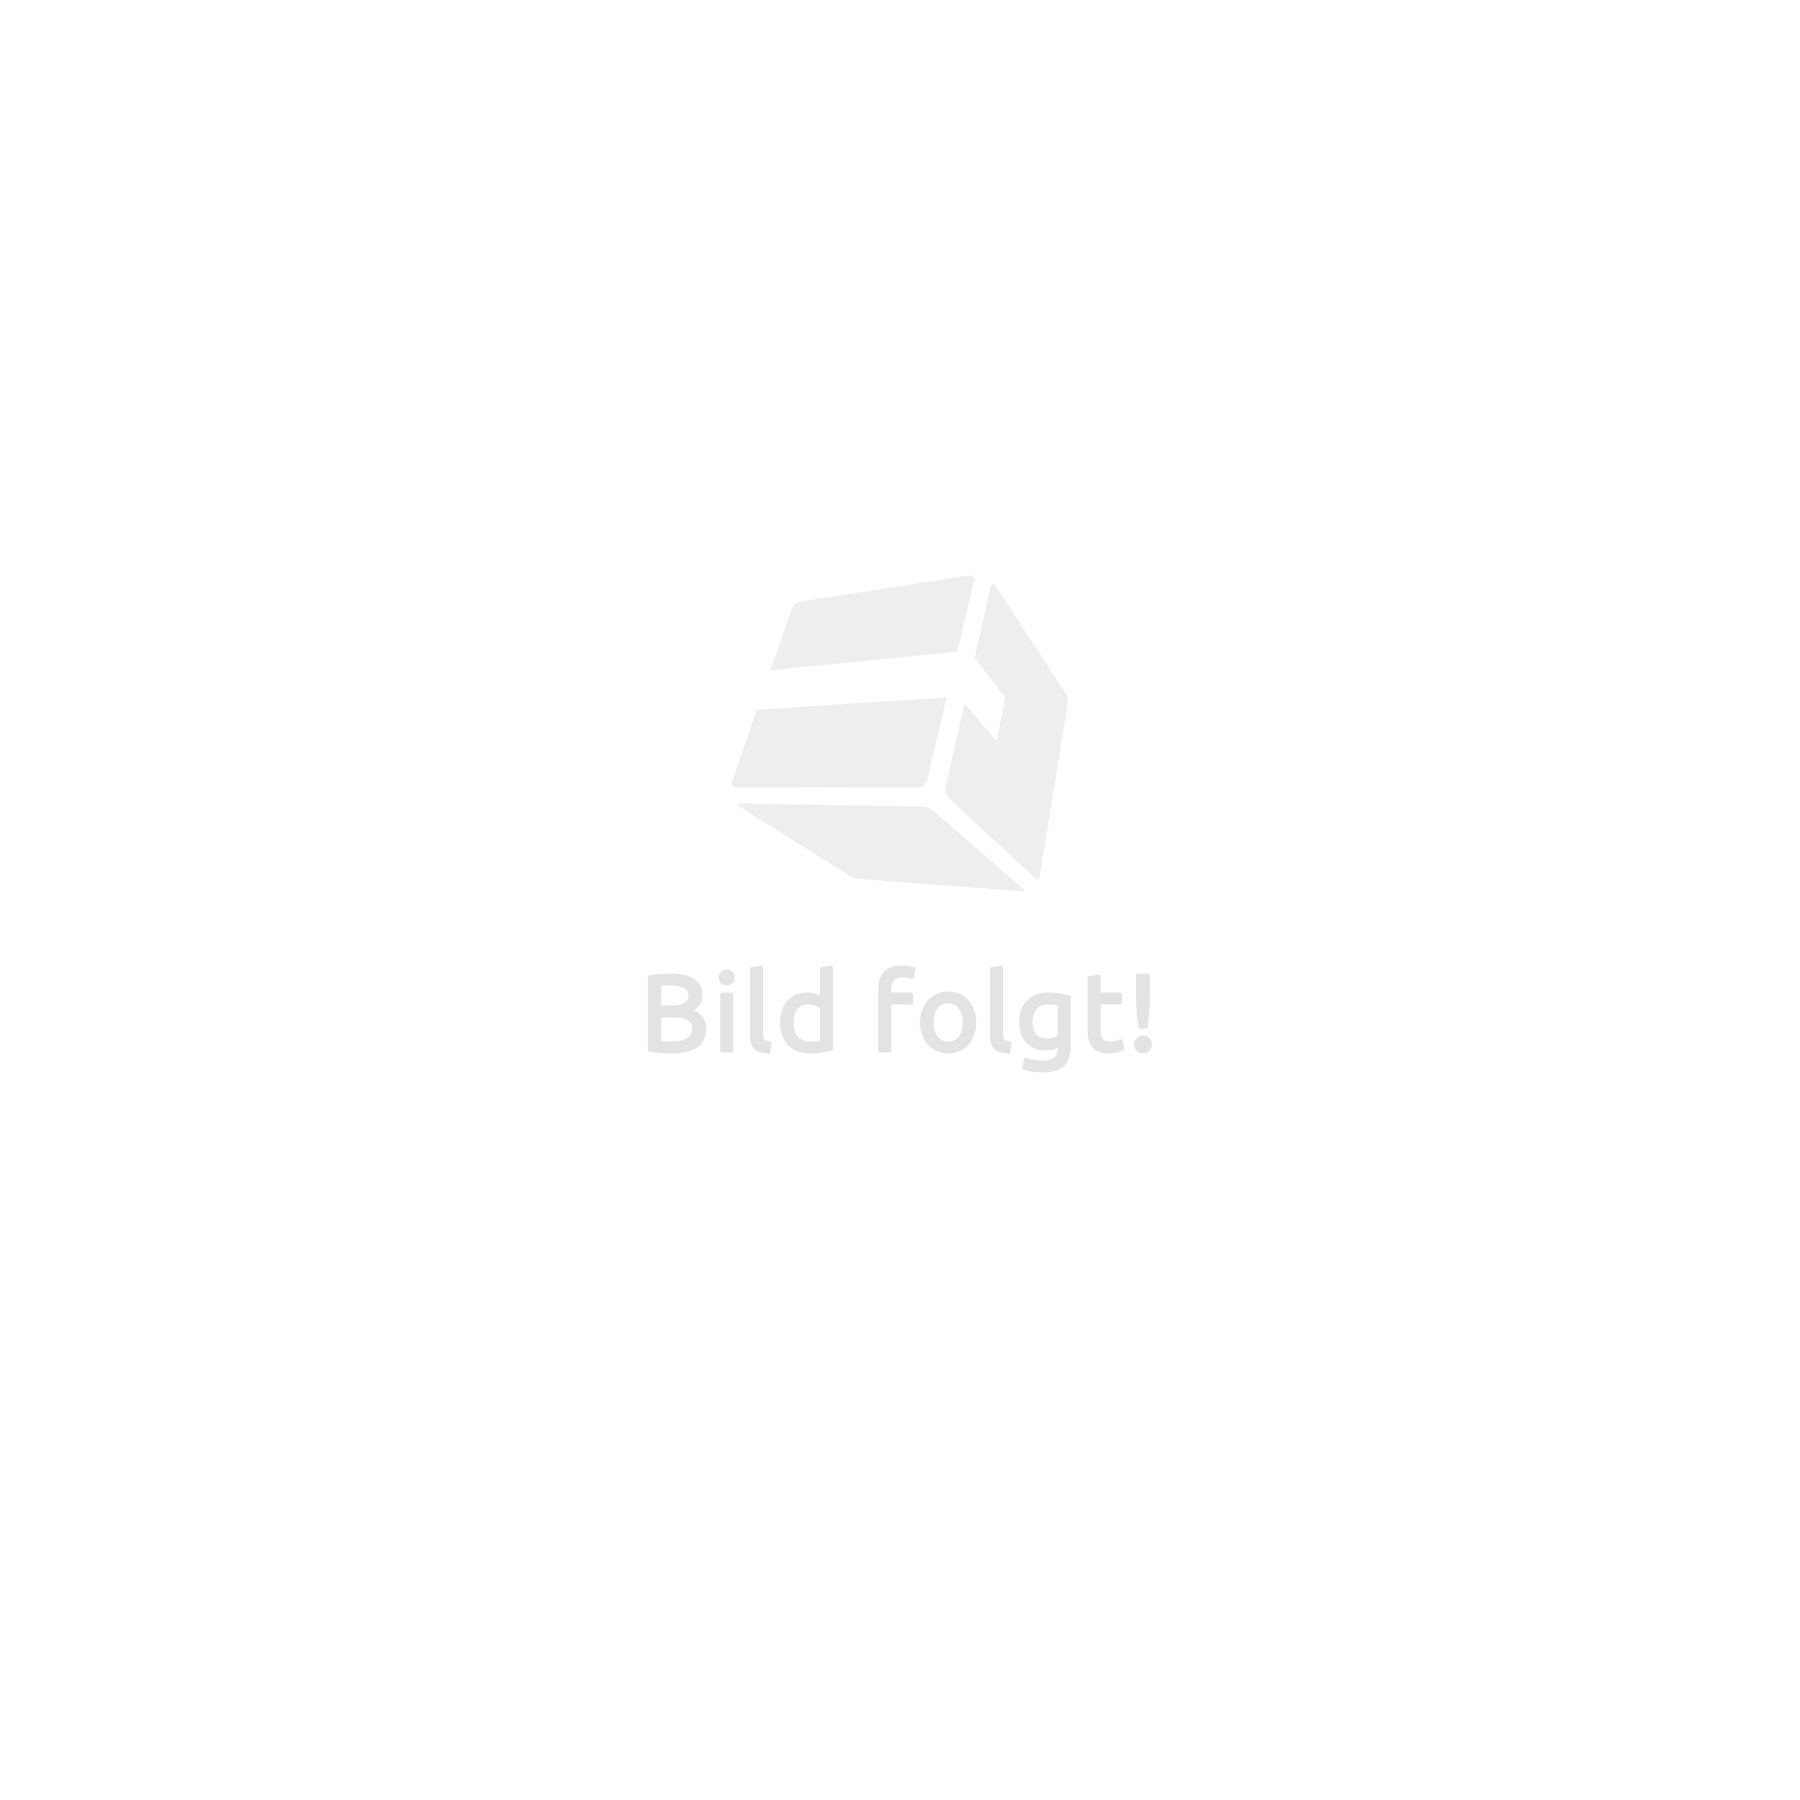 Chaise longue, Poly Rotin - 1 Place - 200 cm x 70 cm x 33 cm marron